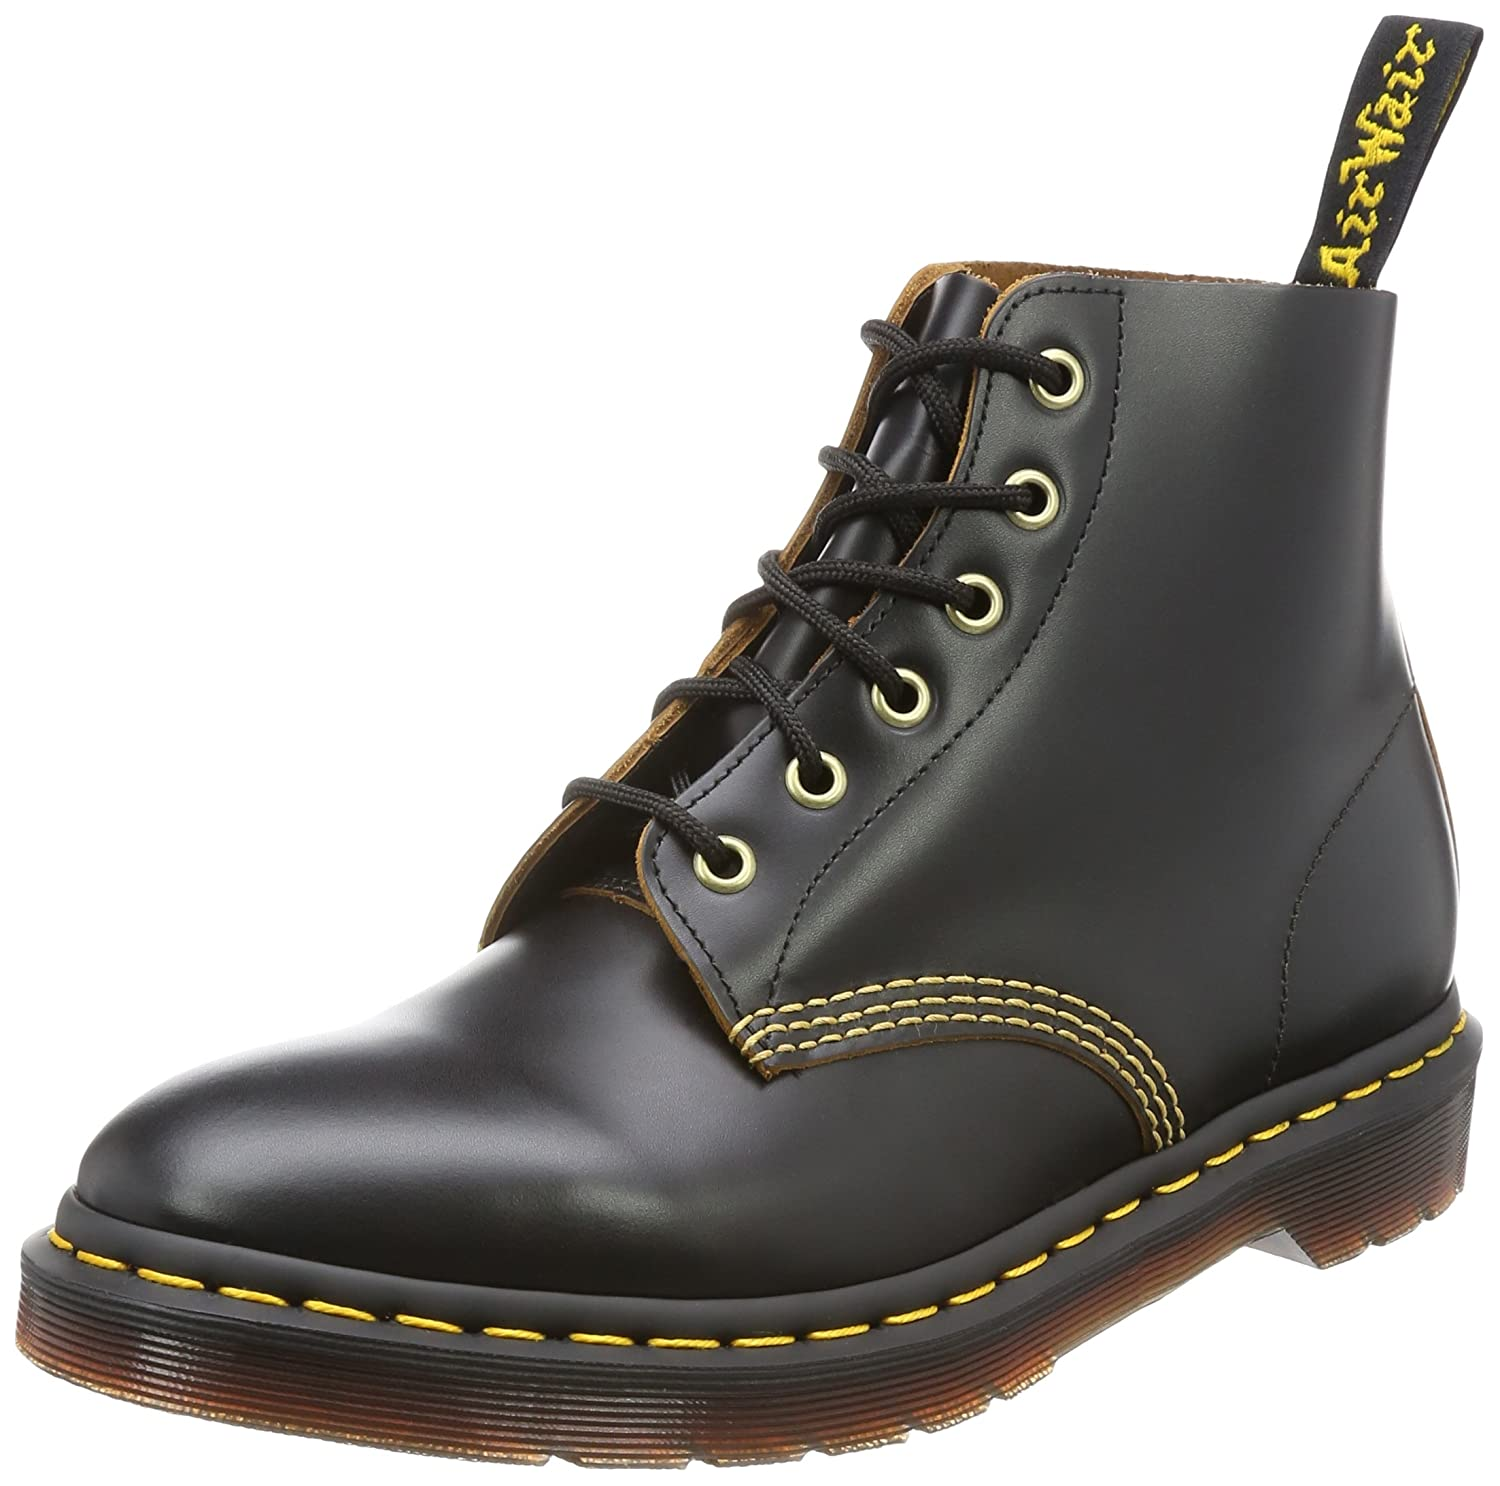 Dr.Martens Womens 101 Arc 6 Eyelet Leather Boots 41 EU